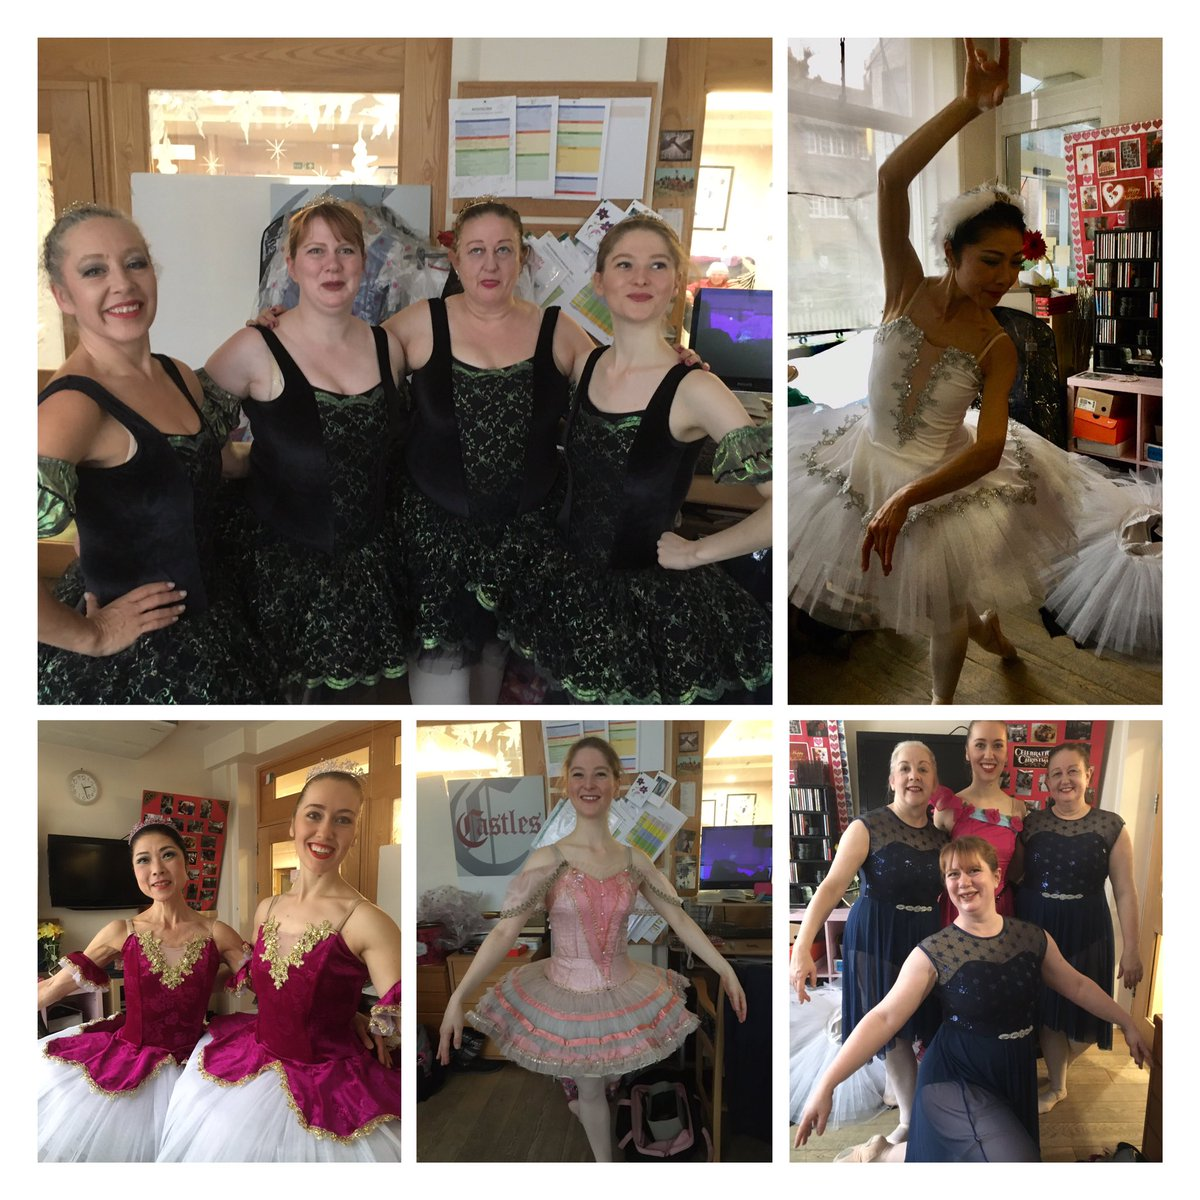 A great first Chelsea Ballet in the Community performance for 2020.  Congratulations to all those involved.  #ChelseaBallet #AdultBallet #Communitypic.twitter.com/YG3hDByD2y